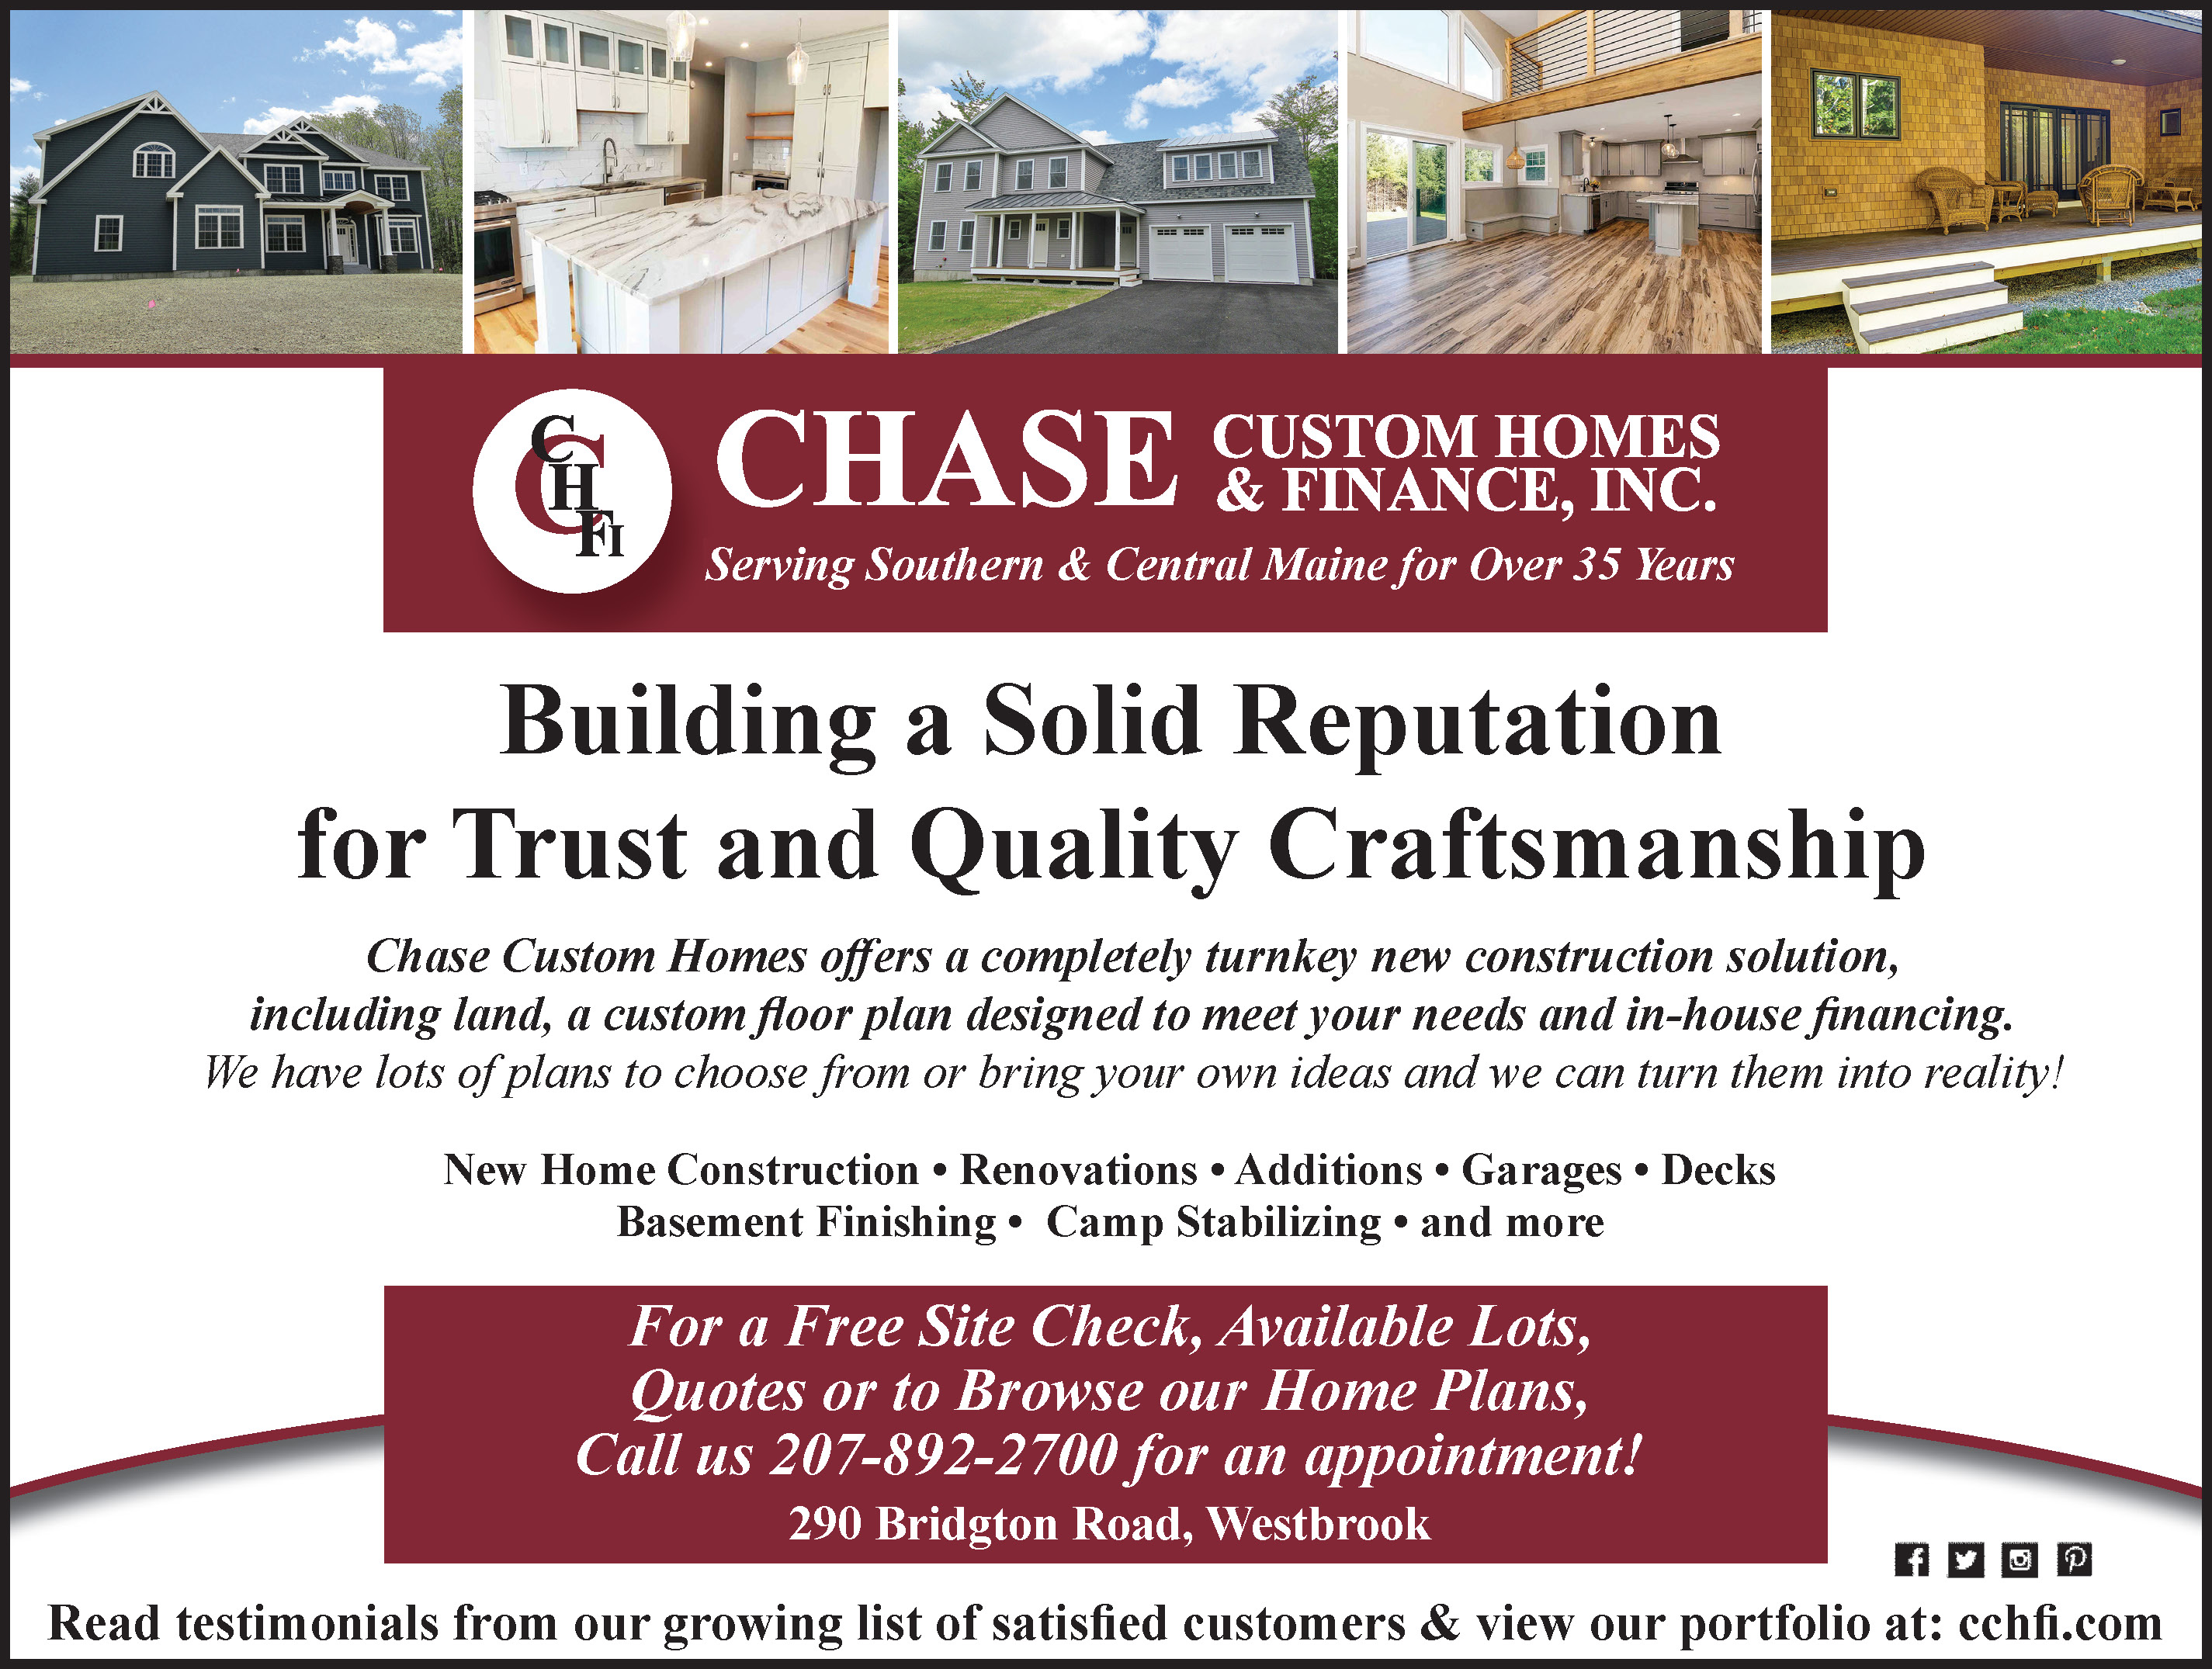 https://www.facebook.com/ChaseCustomHomes/